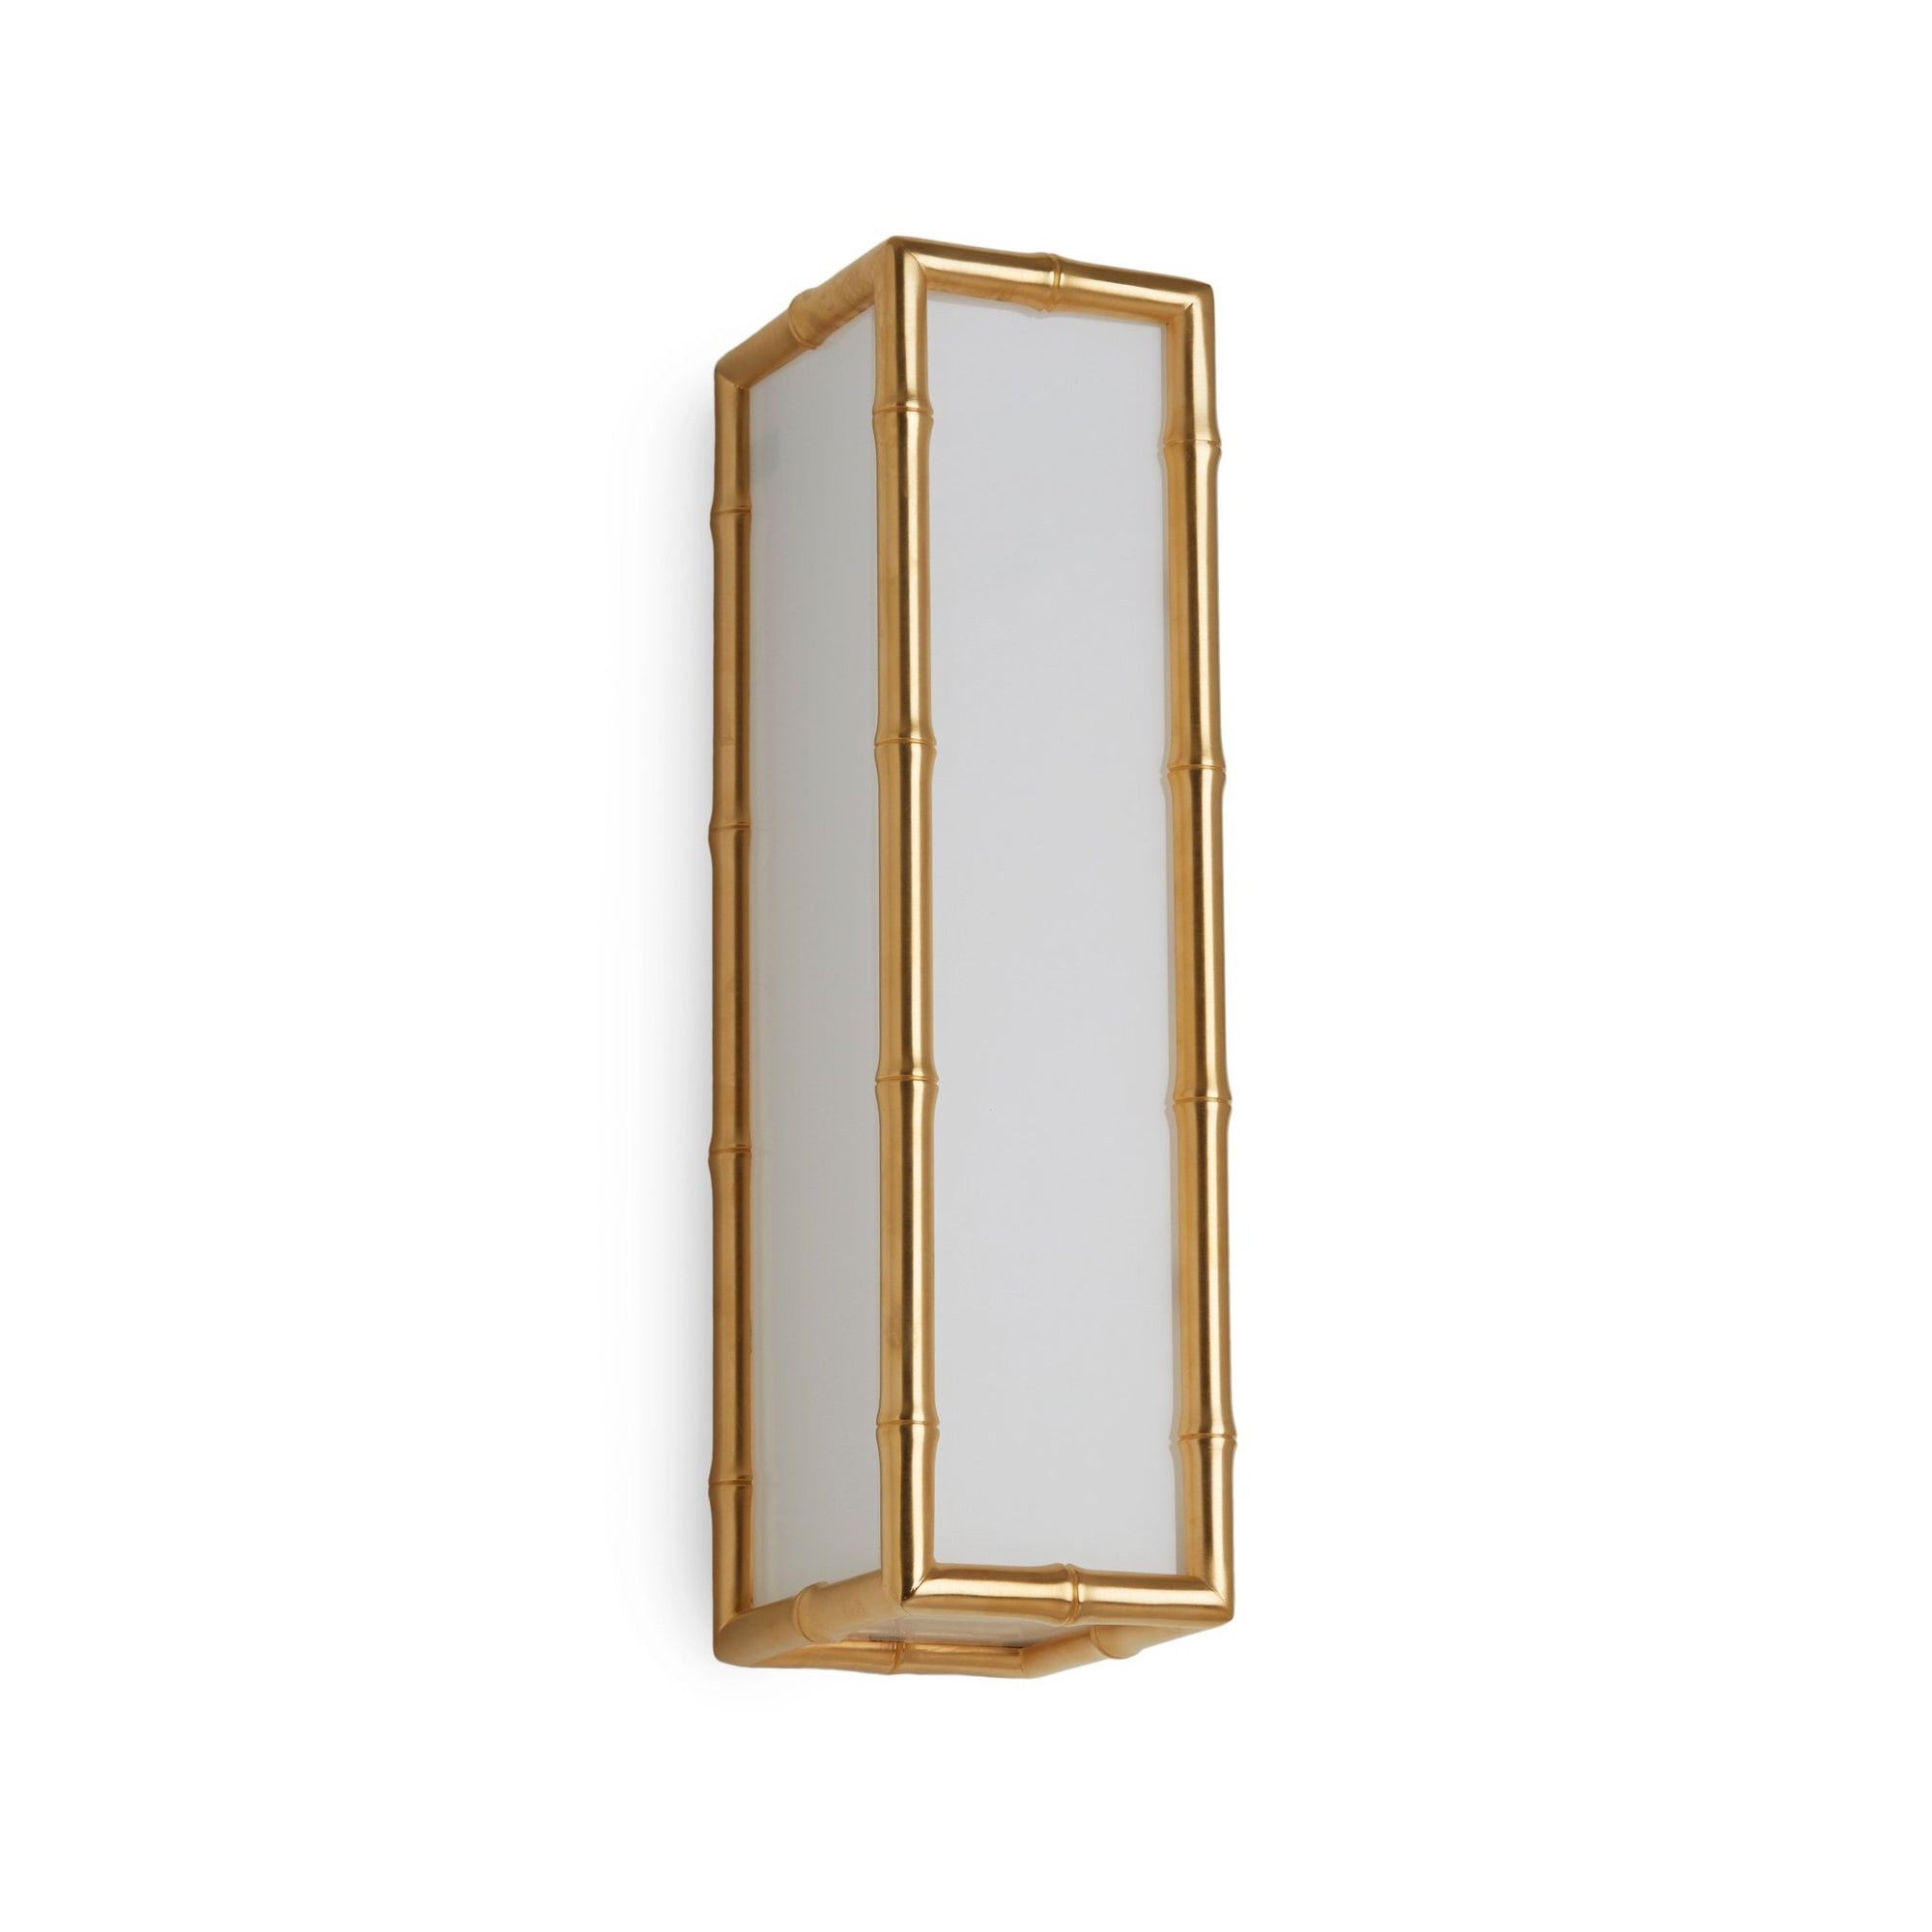 7151FG-16-VERT-GP Sherle Wagner International Bamboo Frosted Glass Panel Light in Gold Plate metal finish